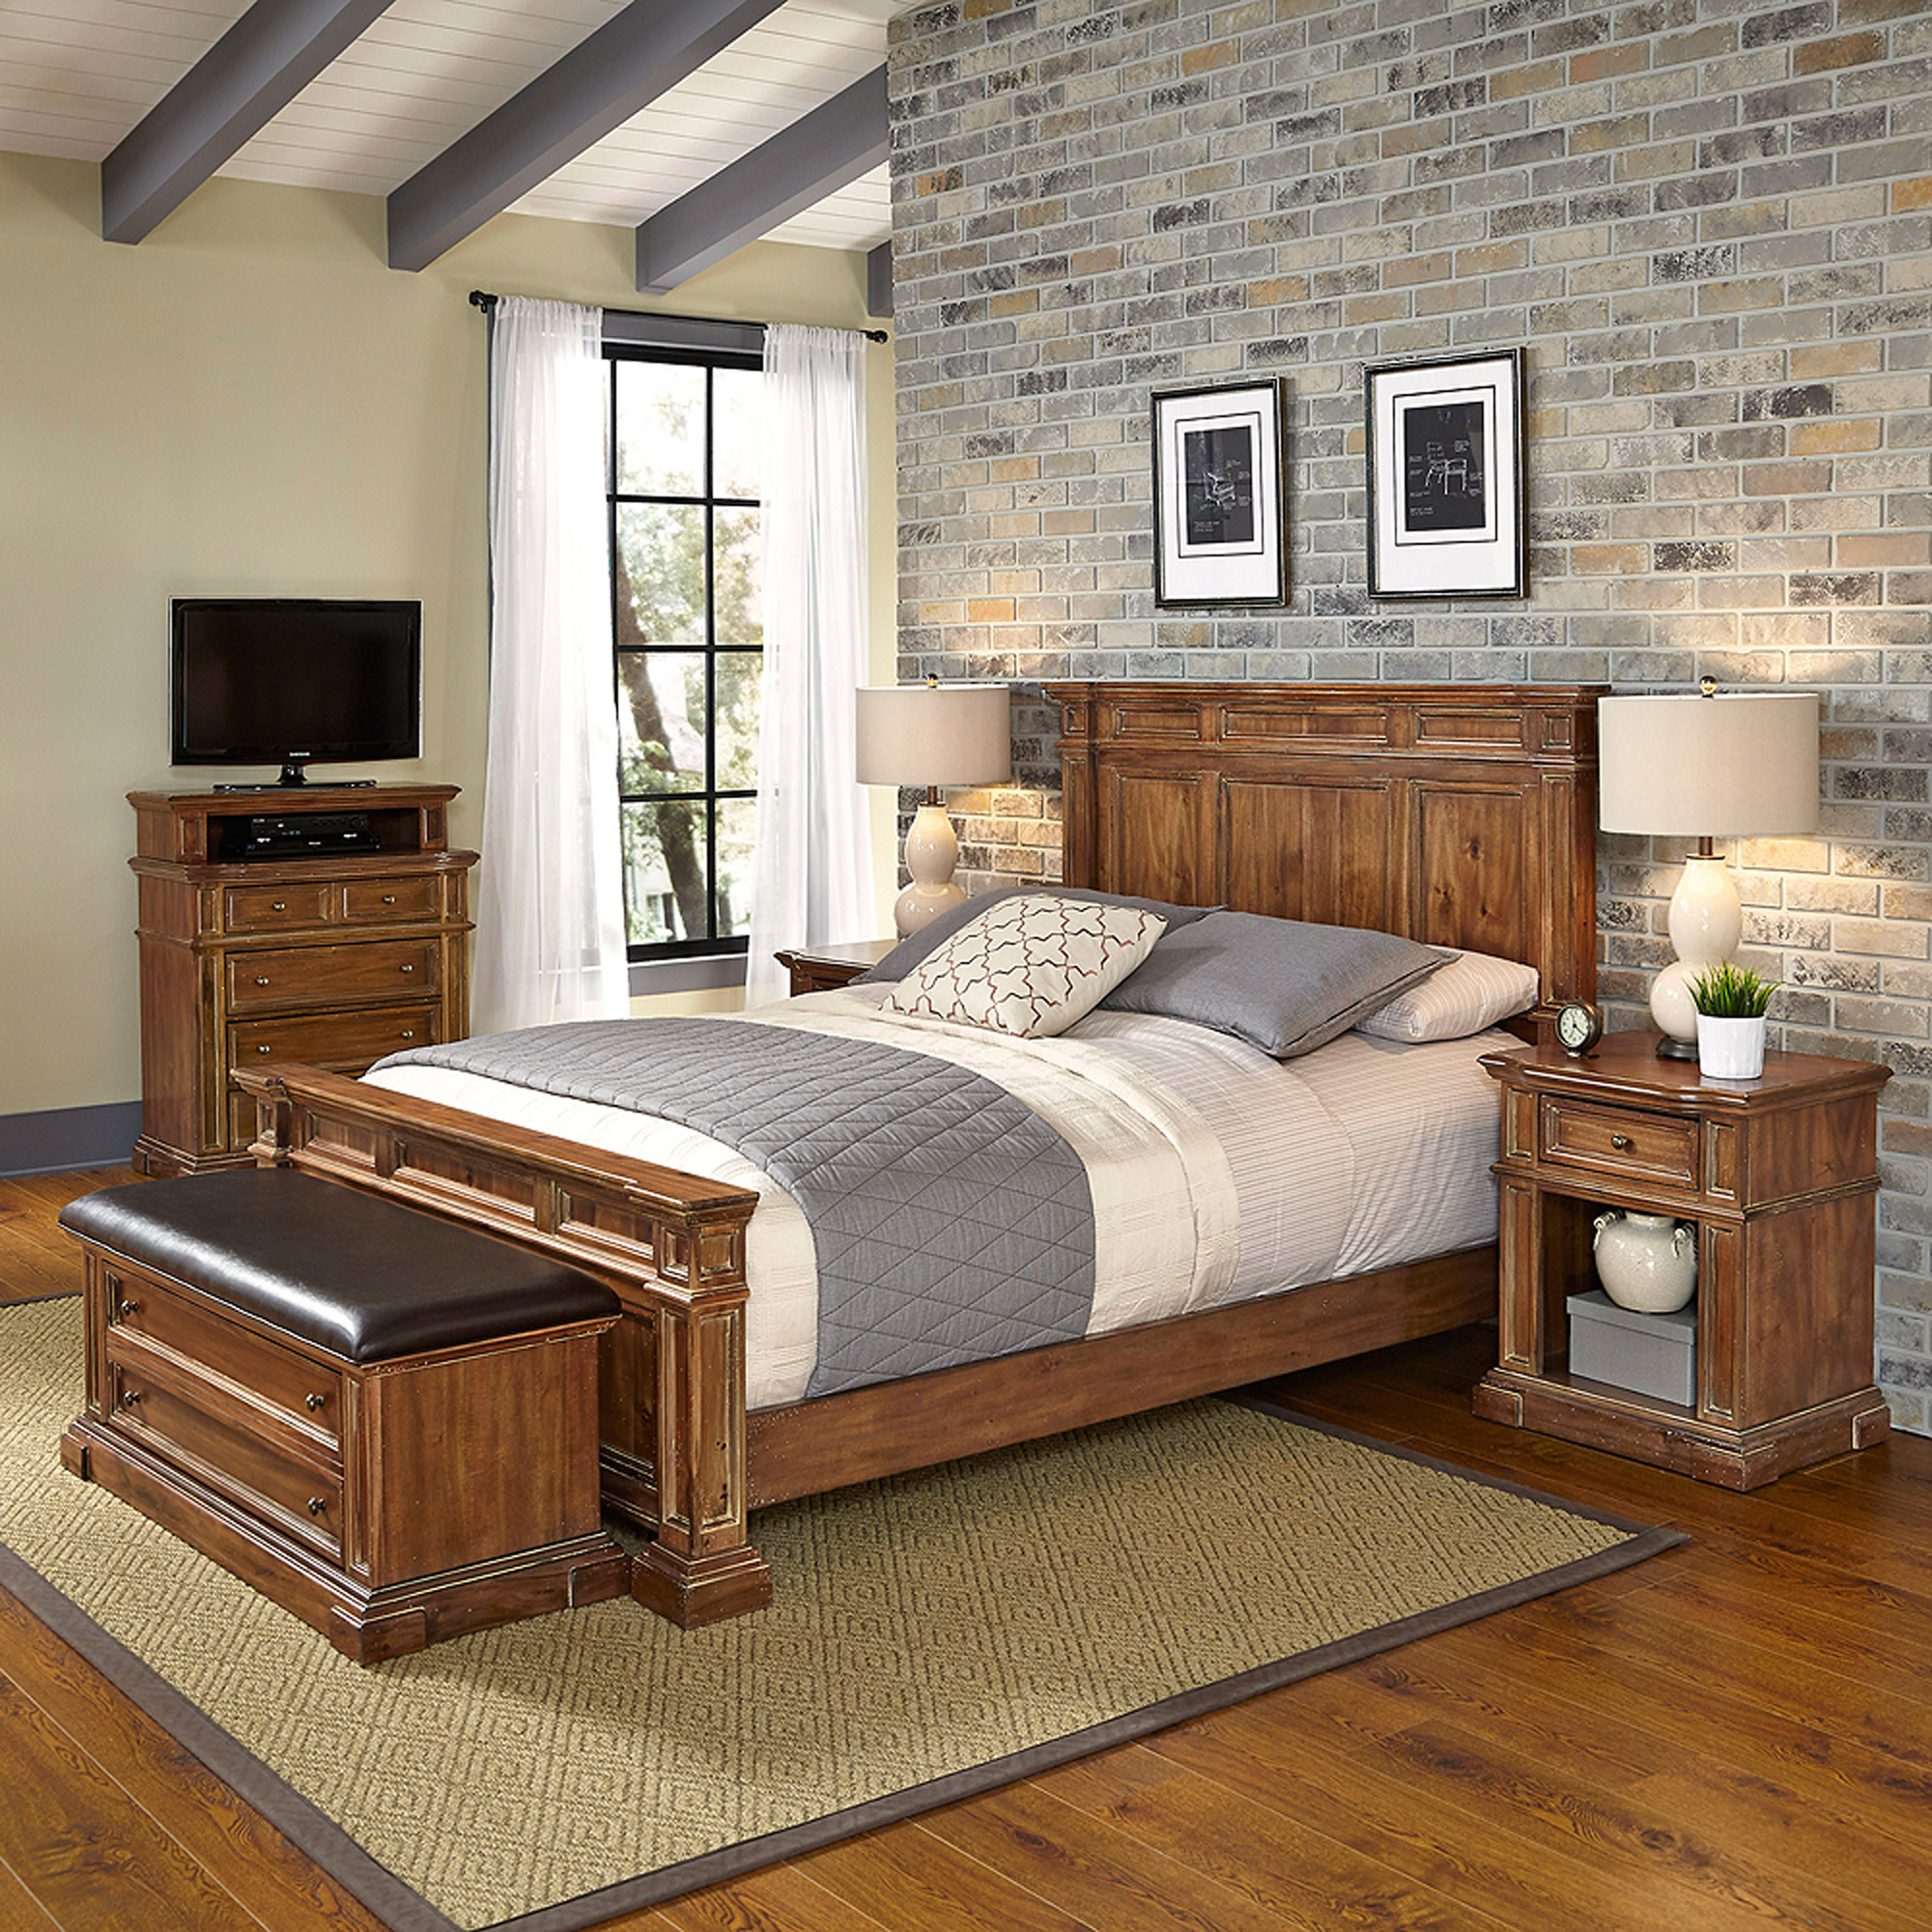 king - Walmart King Bed Frame